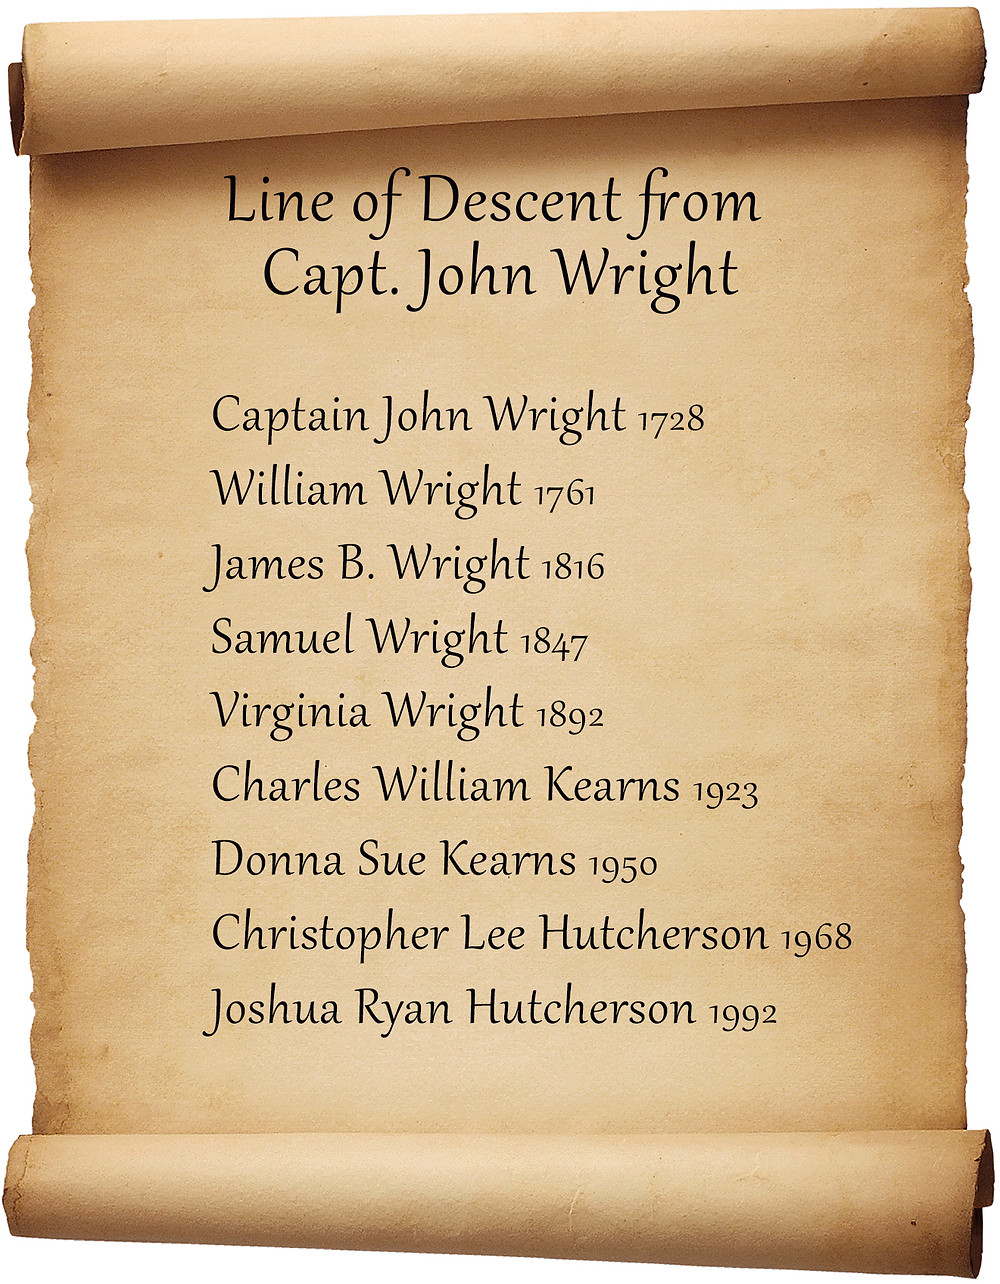 Josh Hutcherson's line of descent from Captain John Wright III. Chart by Mike Batie